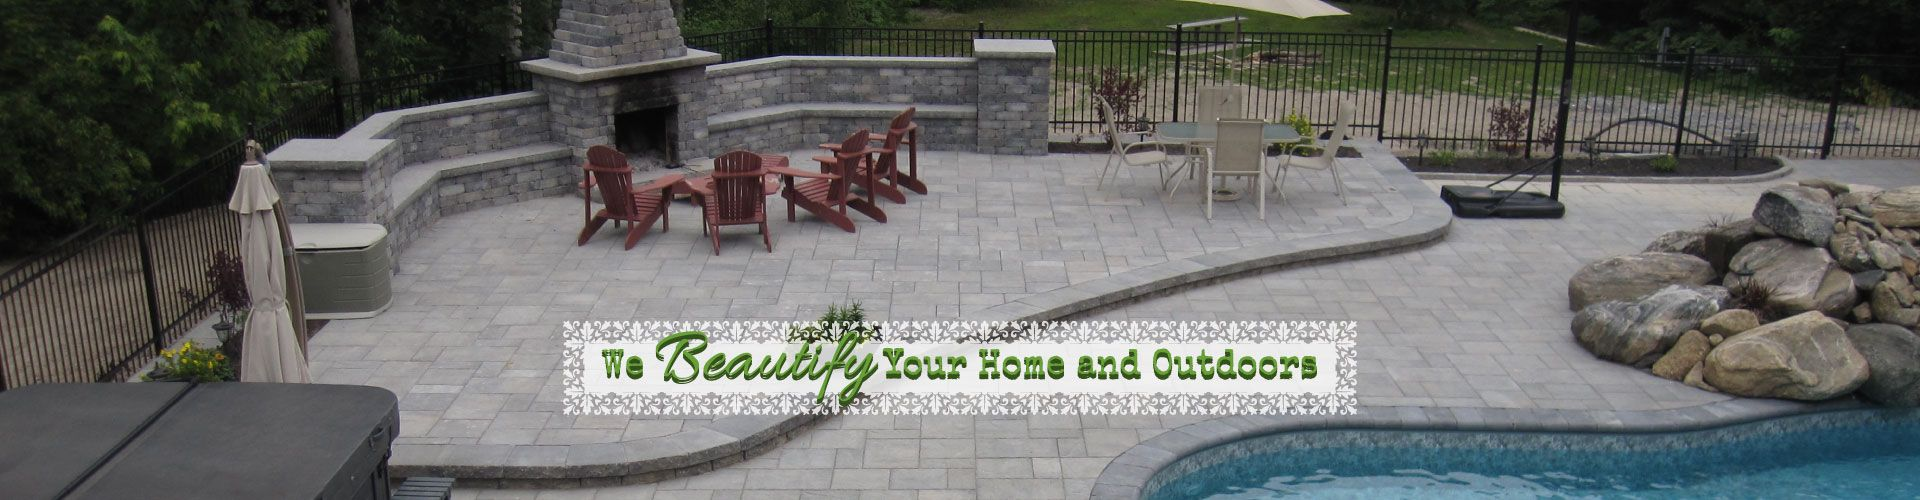 We Beautify Your Home and Outdoors